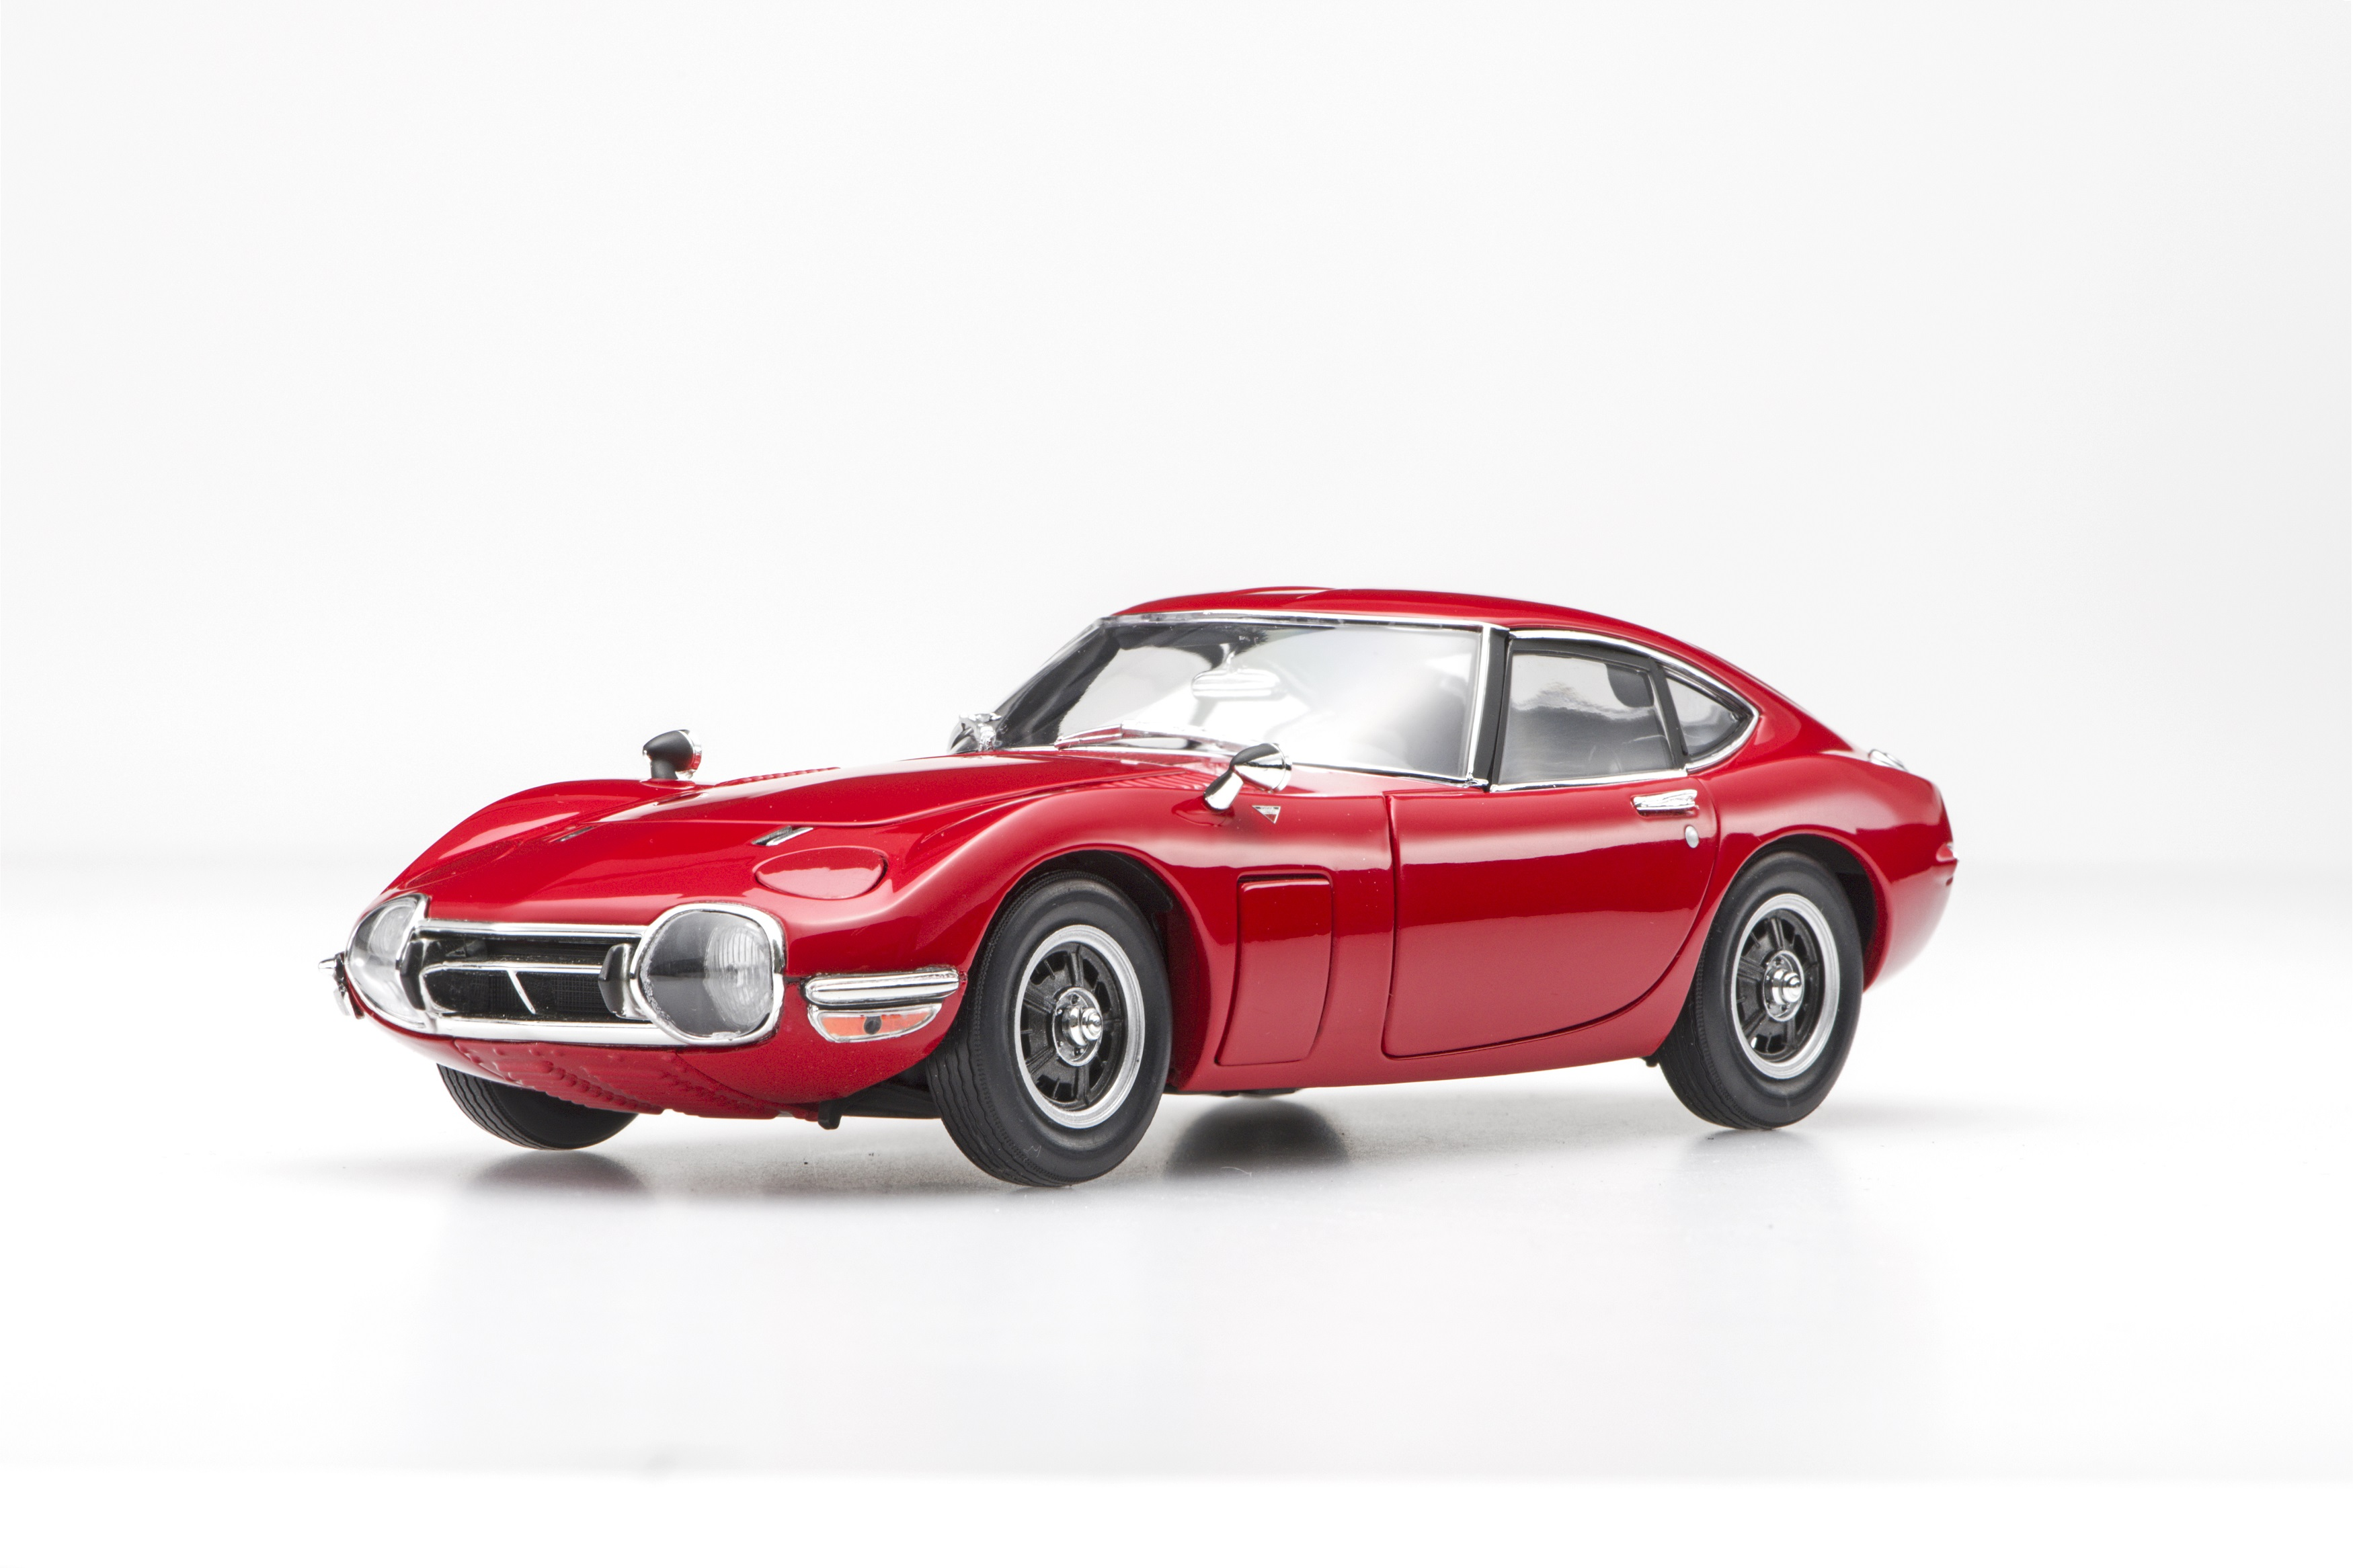 【24031】1/24 TOYOTA 2000GT (Red)